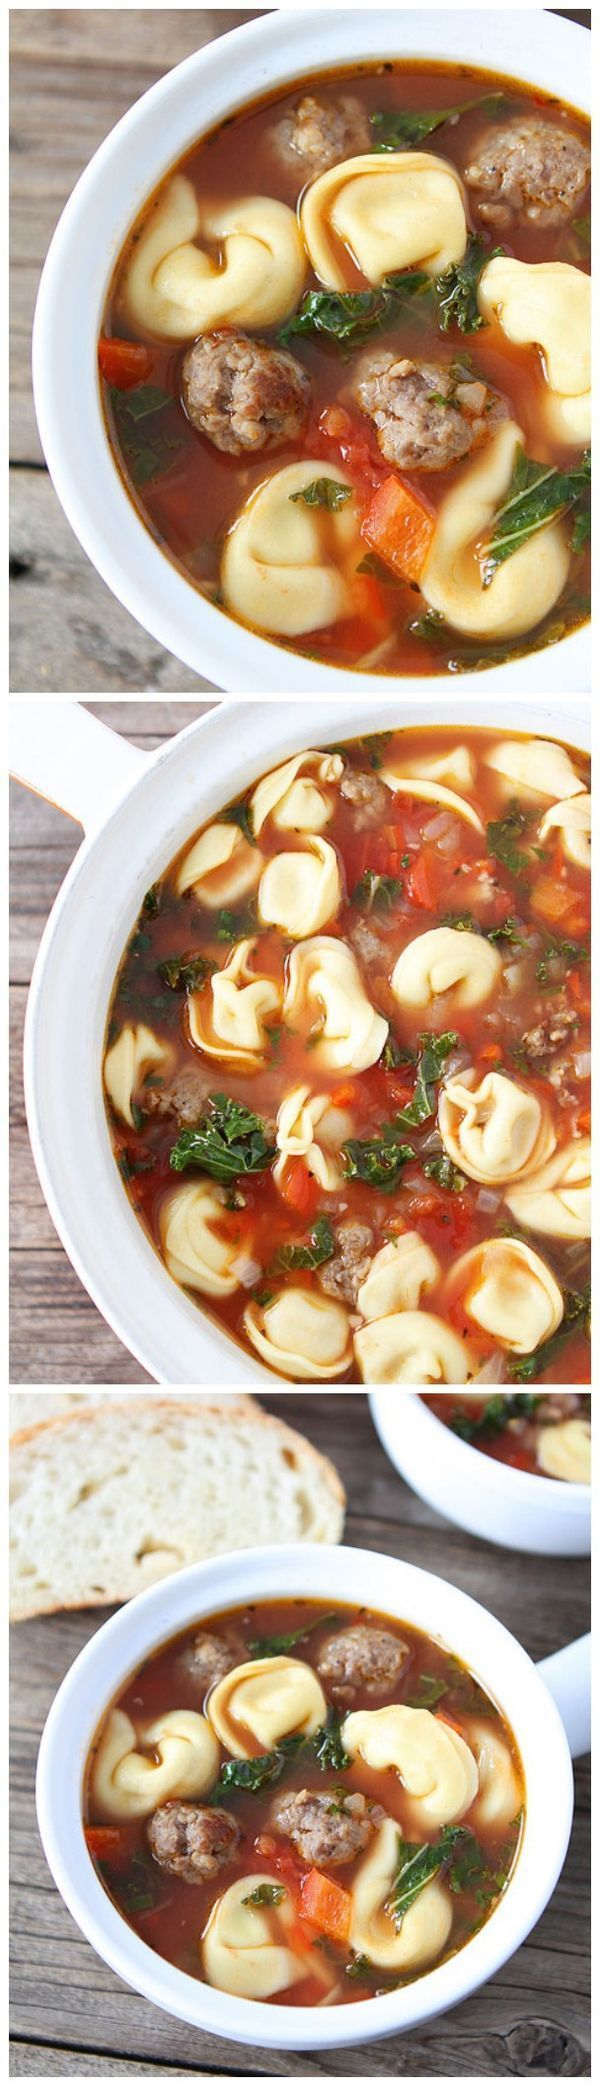 Italian Sausage Tortellini Soup Recipe on twopeasandtheirpod.com Everyone LOVES this hearty soup!